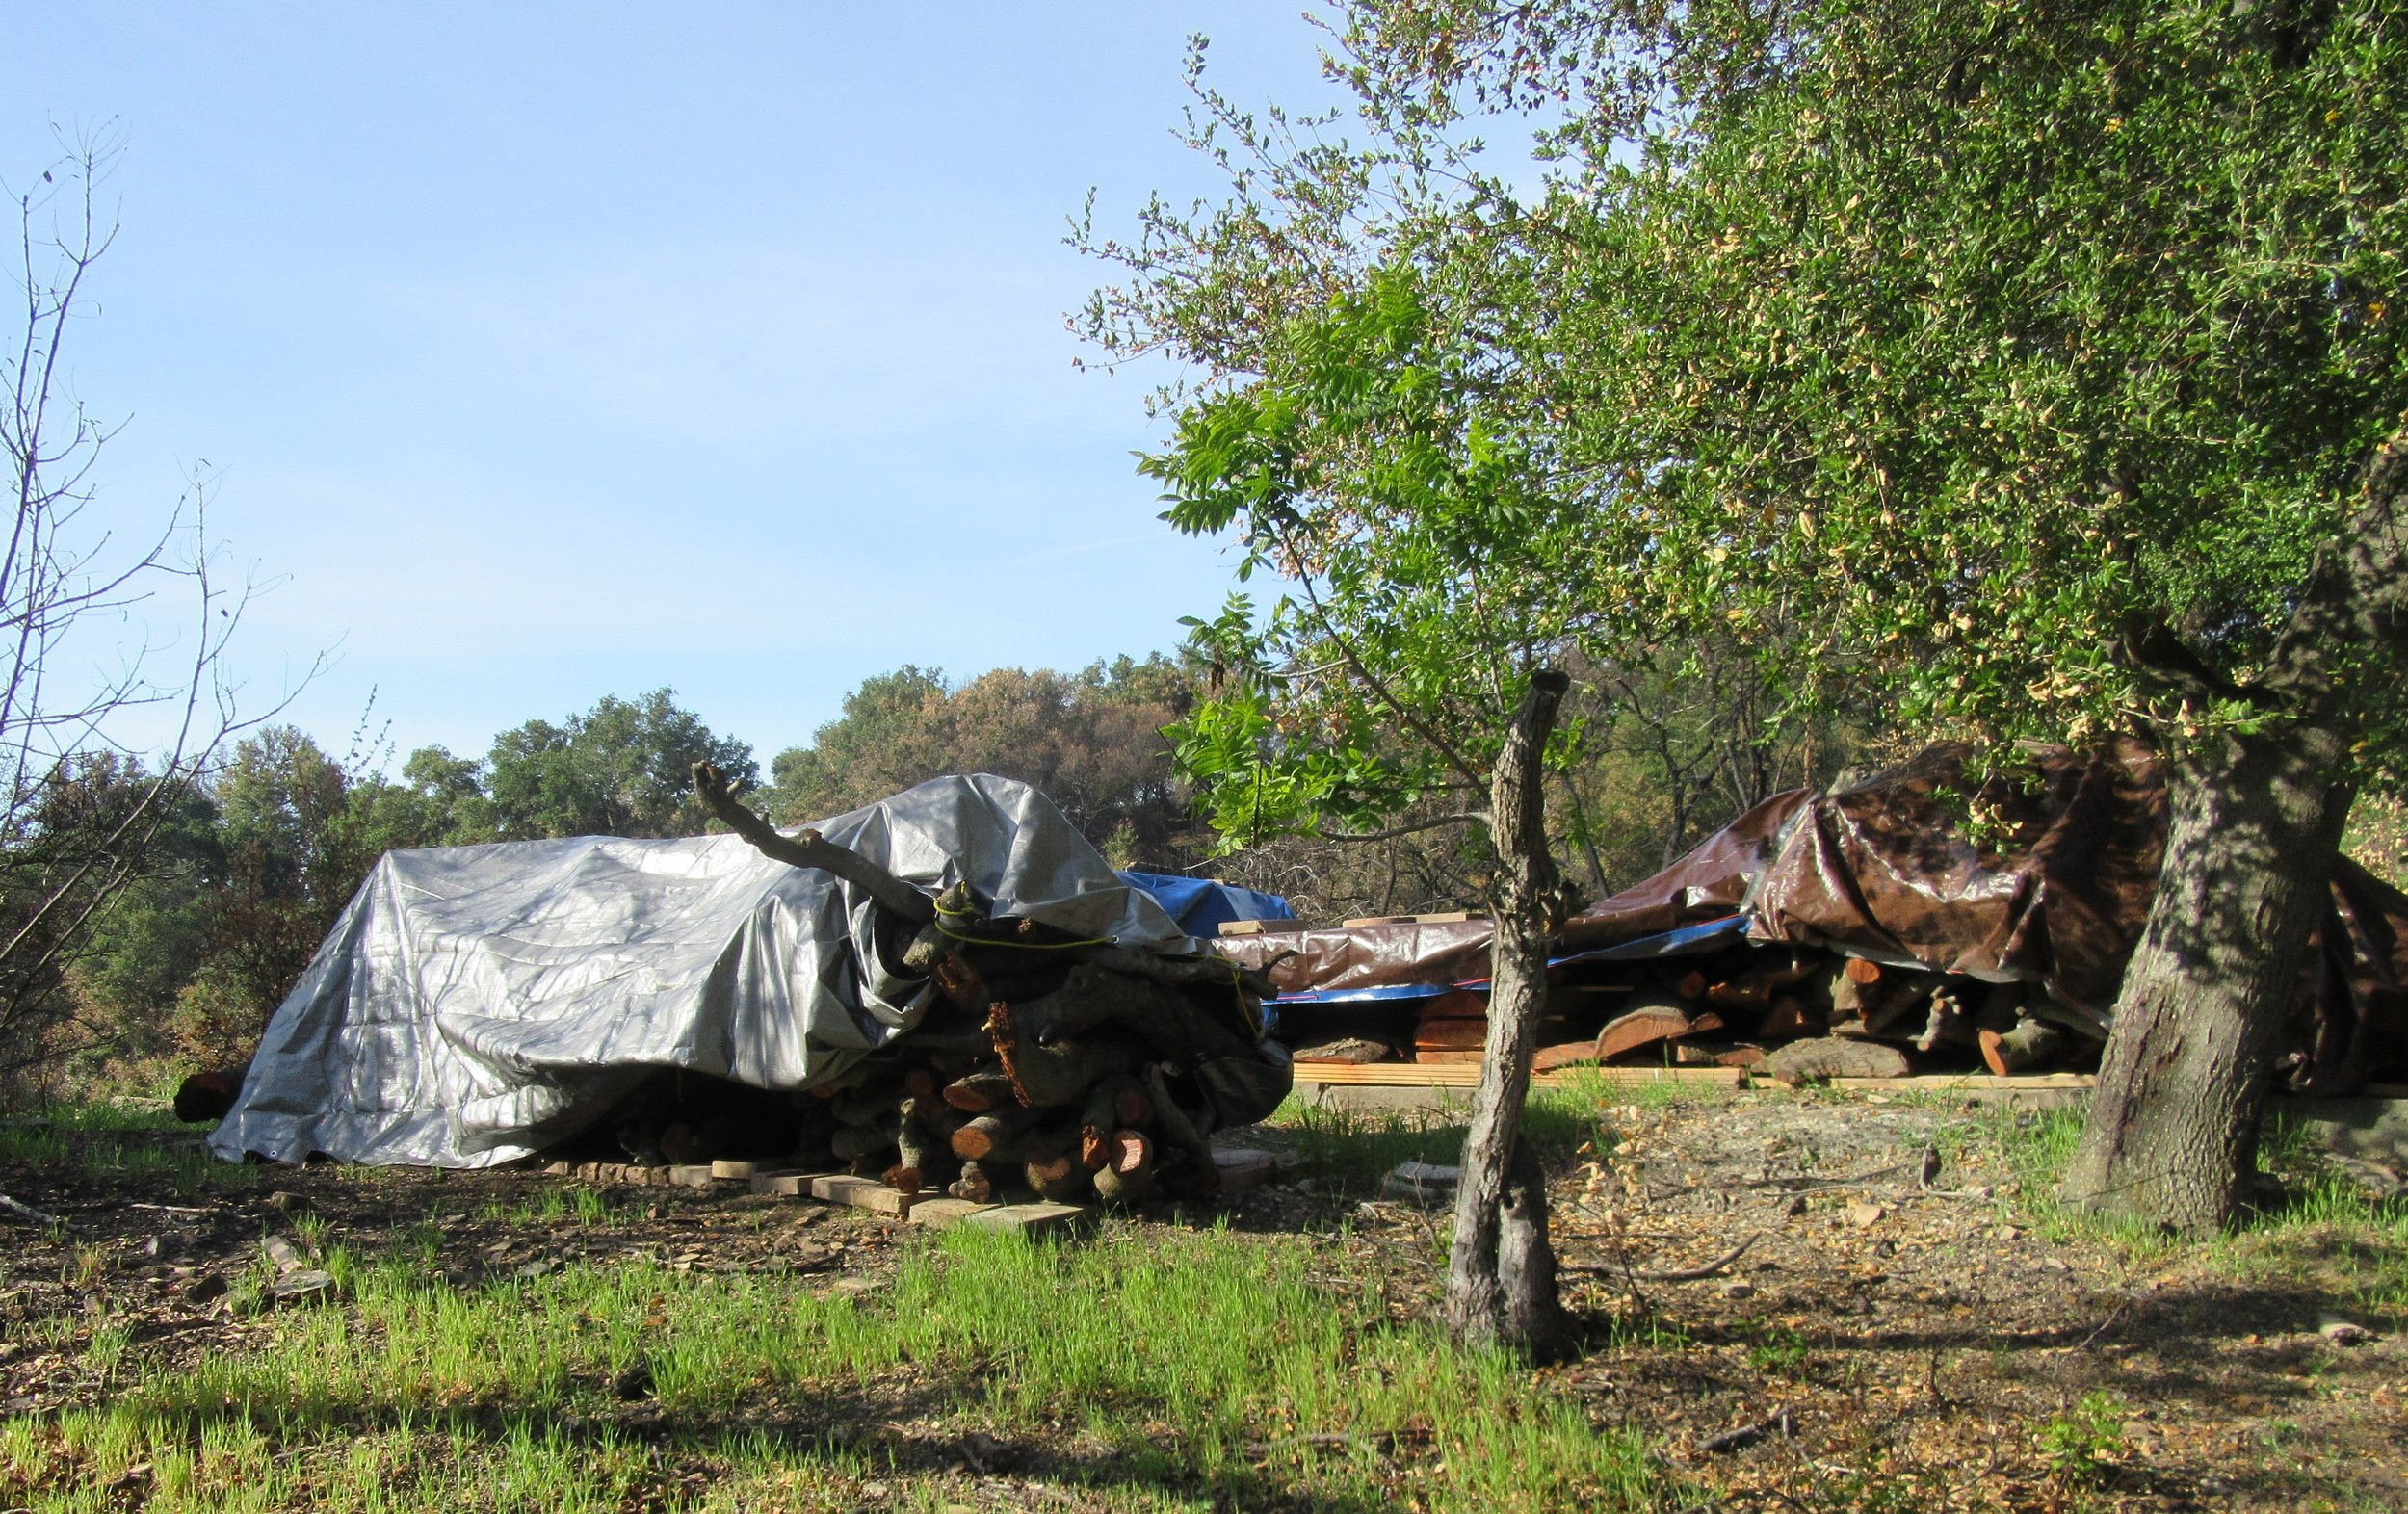 WOOD FROM BABA'S TREE - including milled planks, walking-stick-sized limbs, end pieces and assorted other chunks - are collected and stored. They are covered with tarps and sitting on an old foundation from a shed that was on the property before the 1985 New Life Fire. (Photo: Sam Ervin, April 3, 2018)